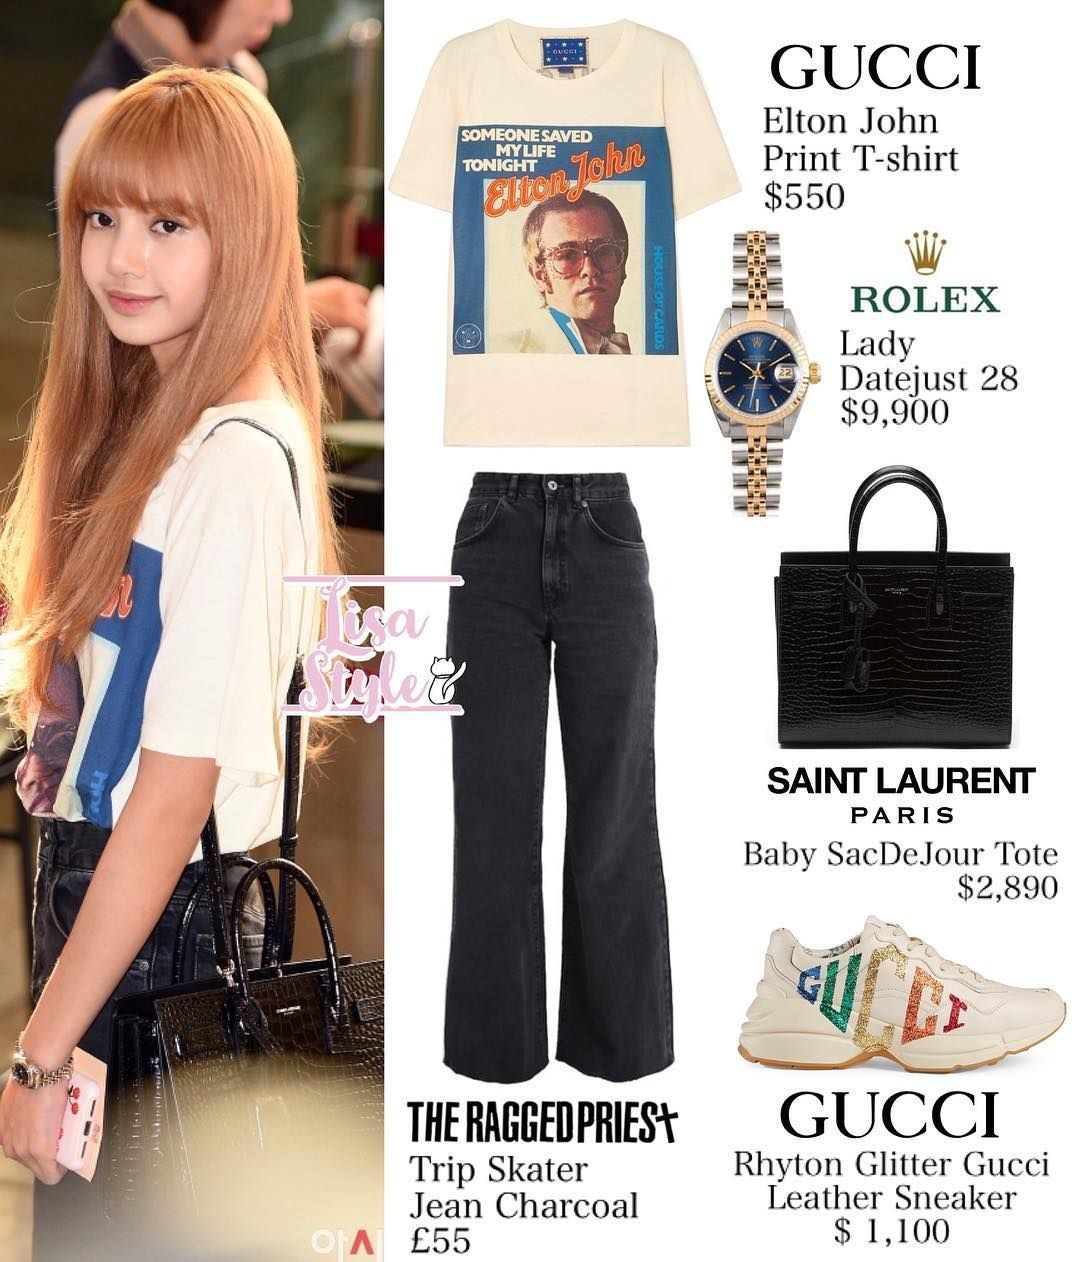 6a4fb8a8320 180917 - GMP AIRPORT  BLACKPINK  블랙핑크  LISA  리사  LISAstyle  패션  GUCCI   SAINTLAURENT